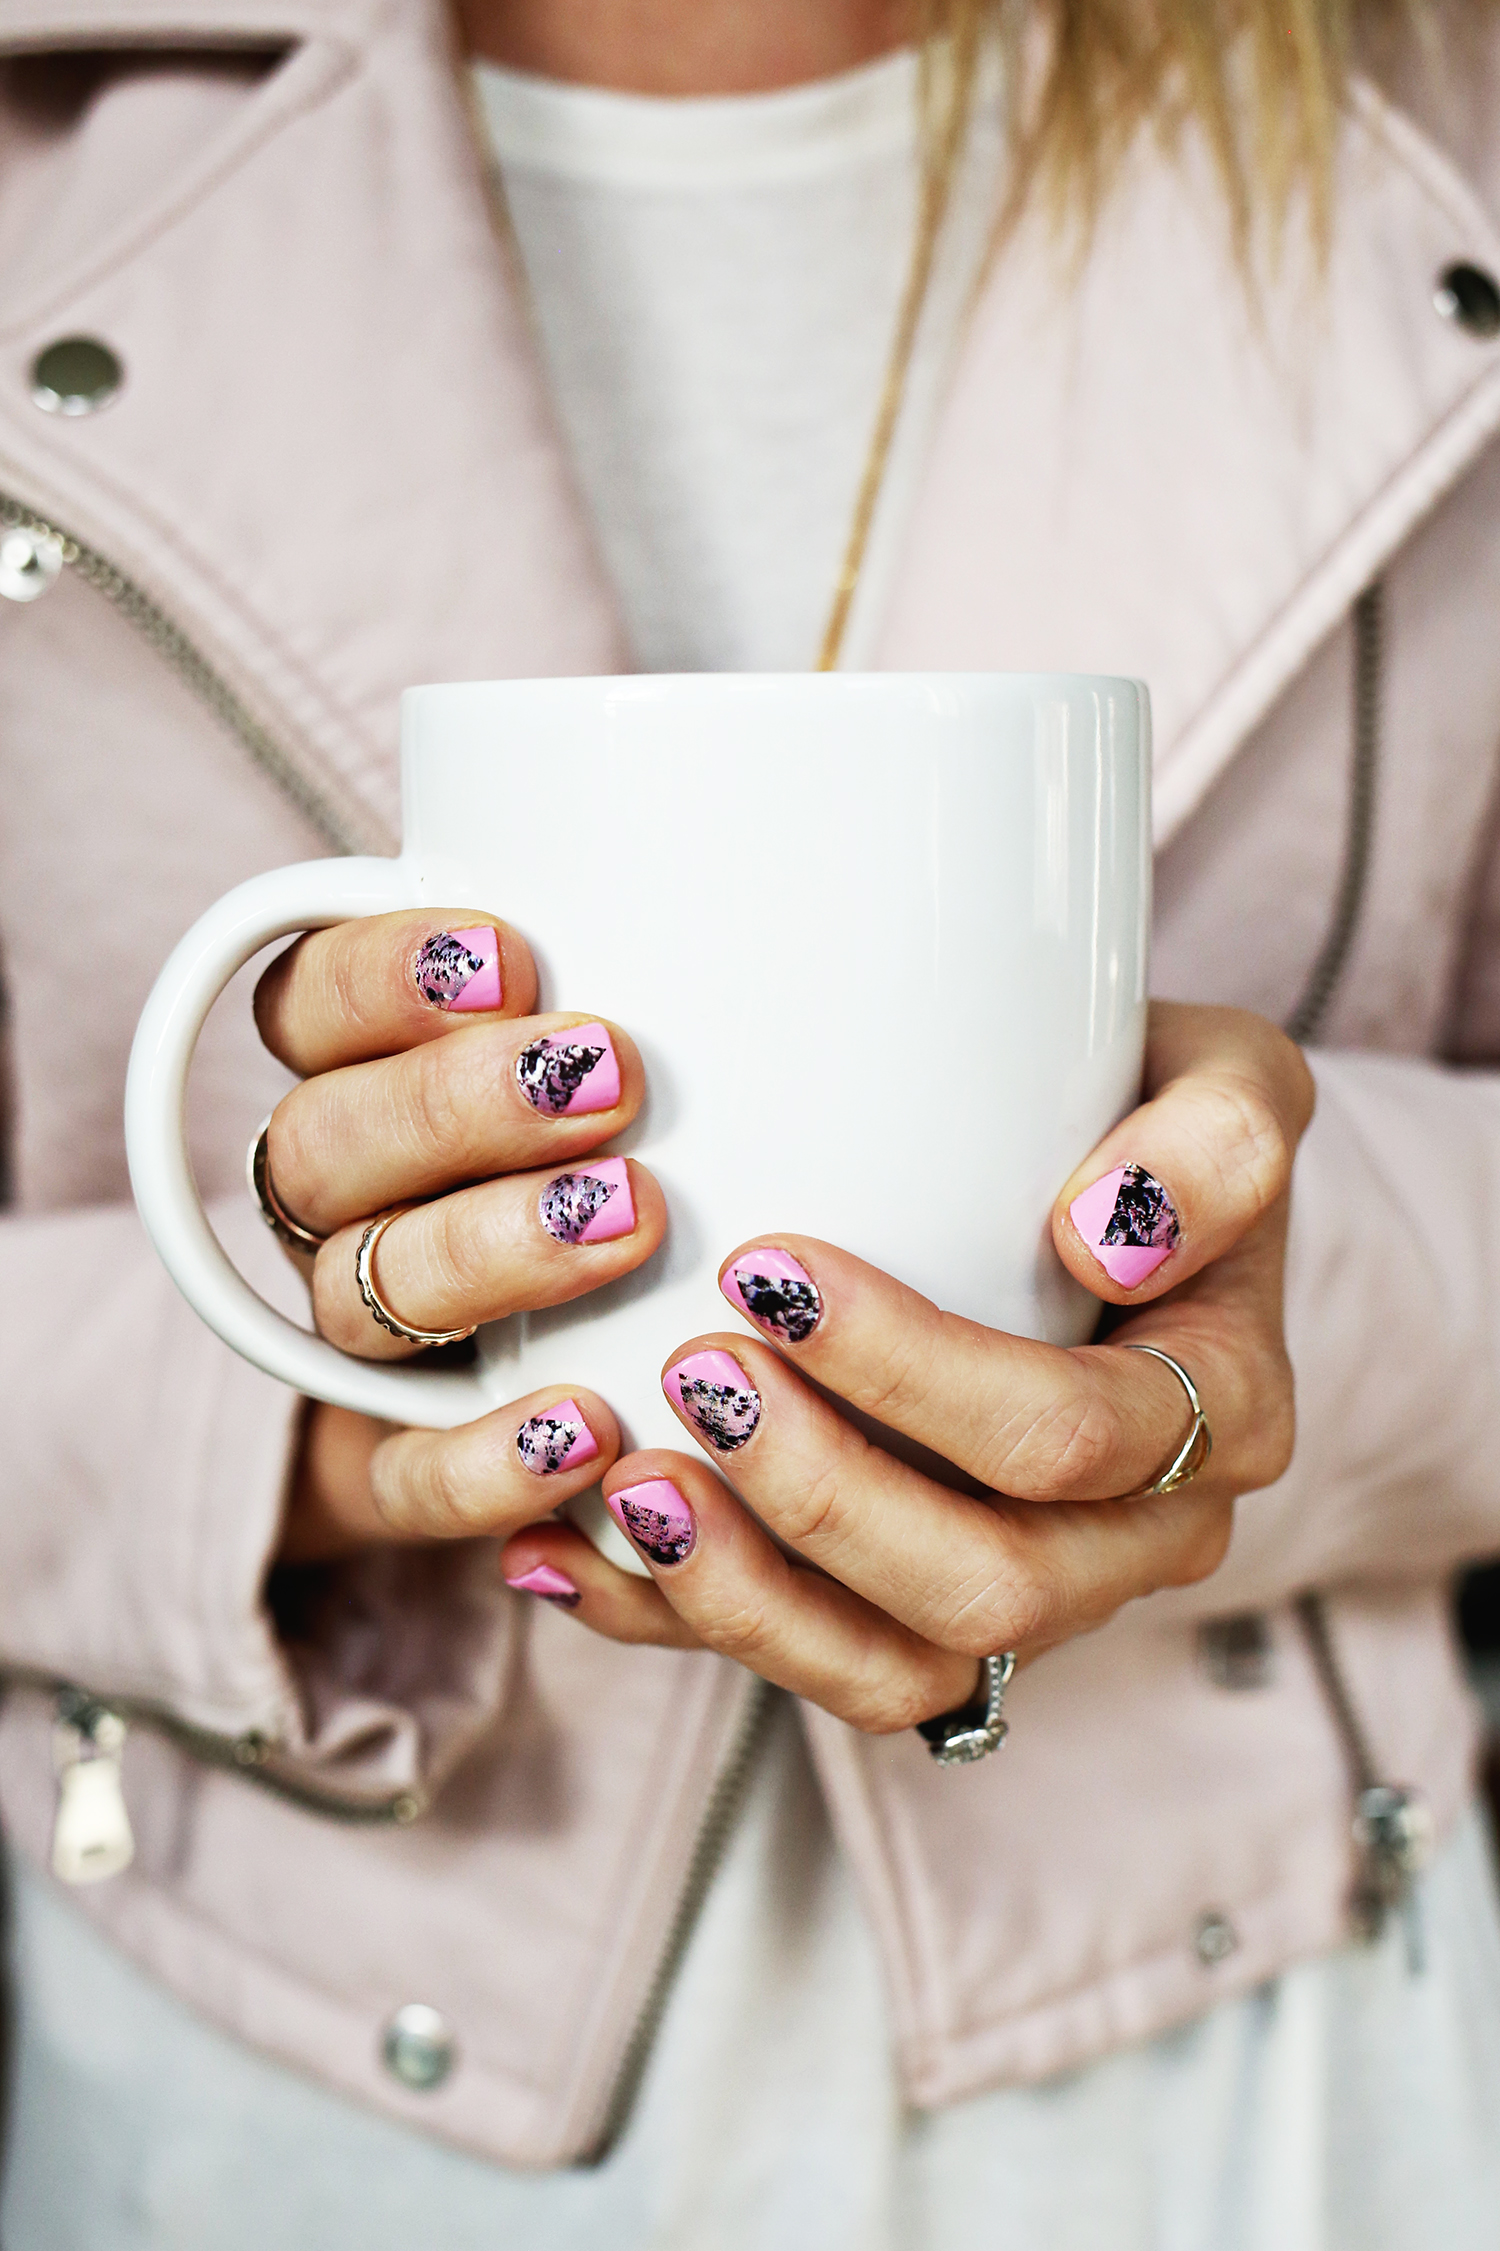 Use nail wraps to create a geometric nail design!